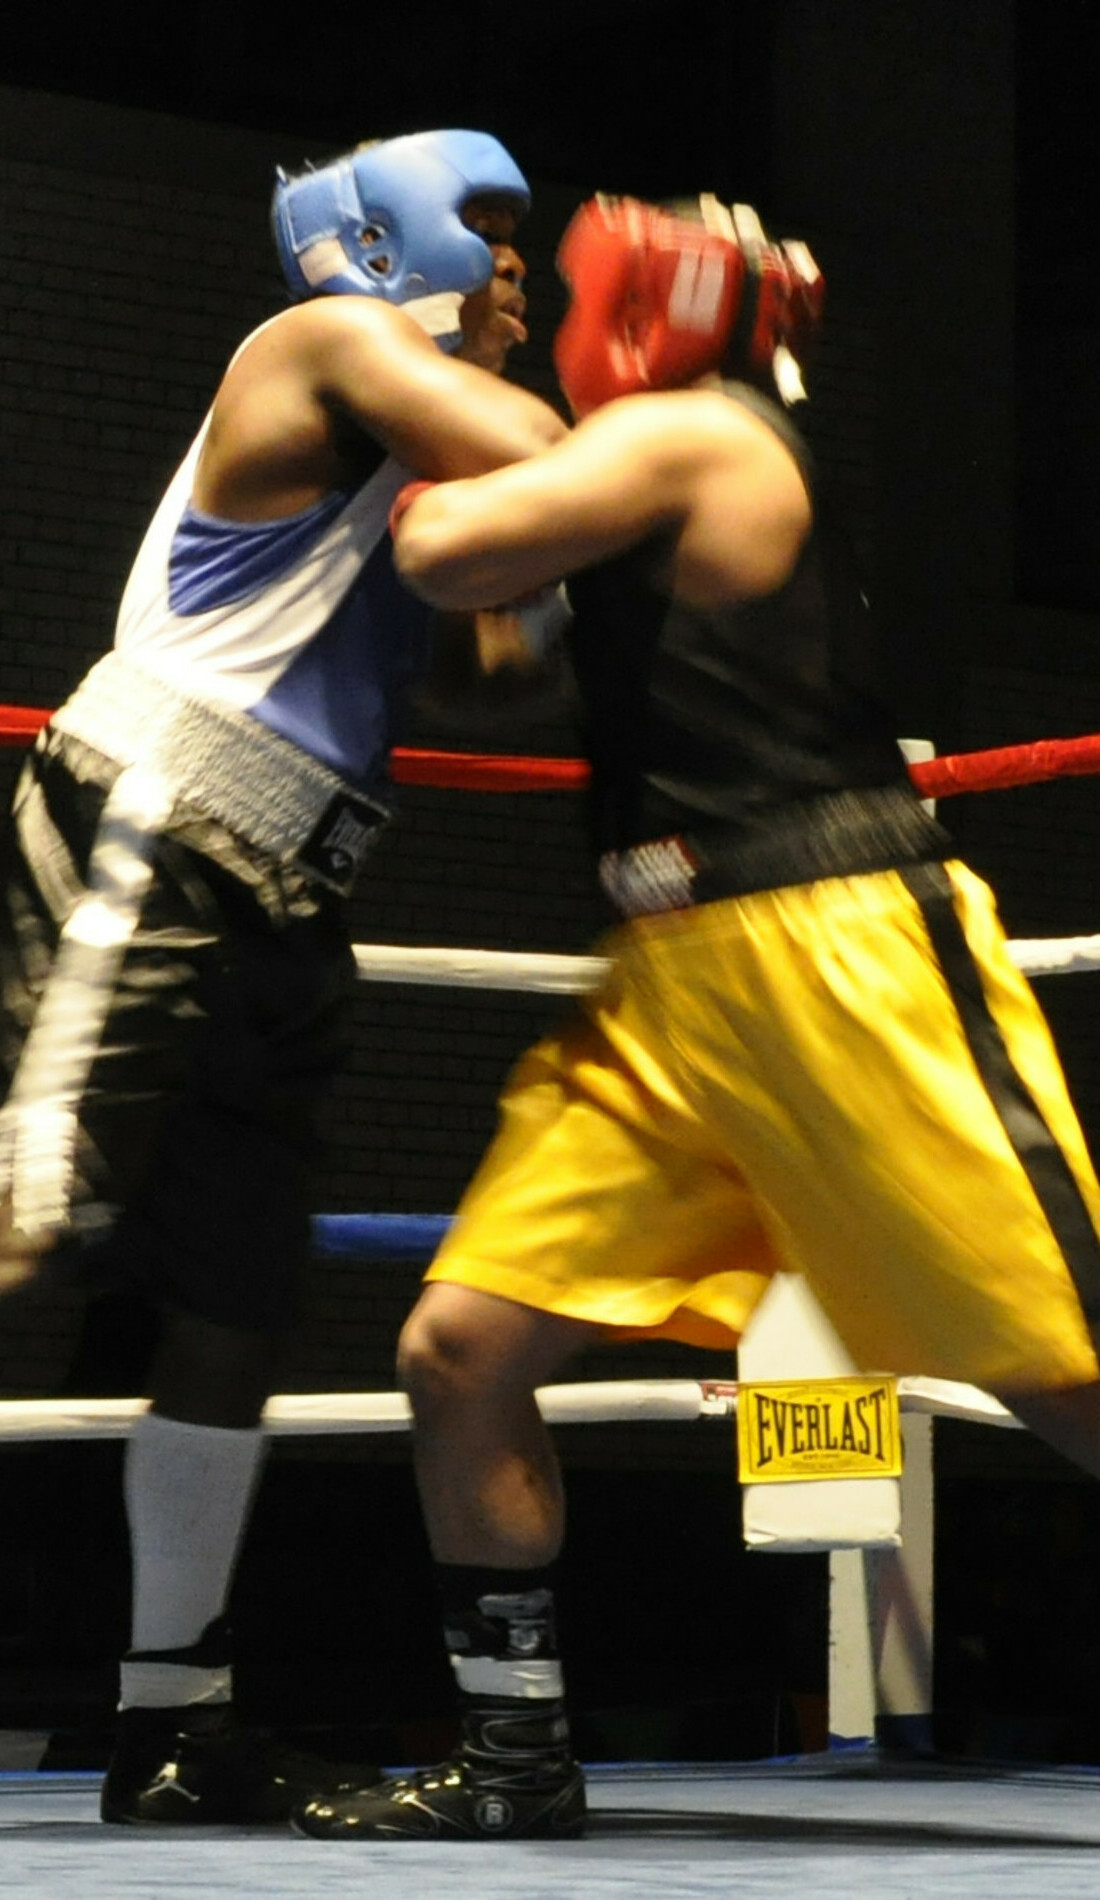 A Professional Boxing live event